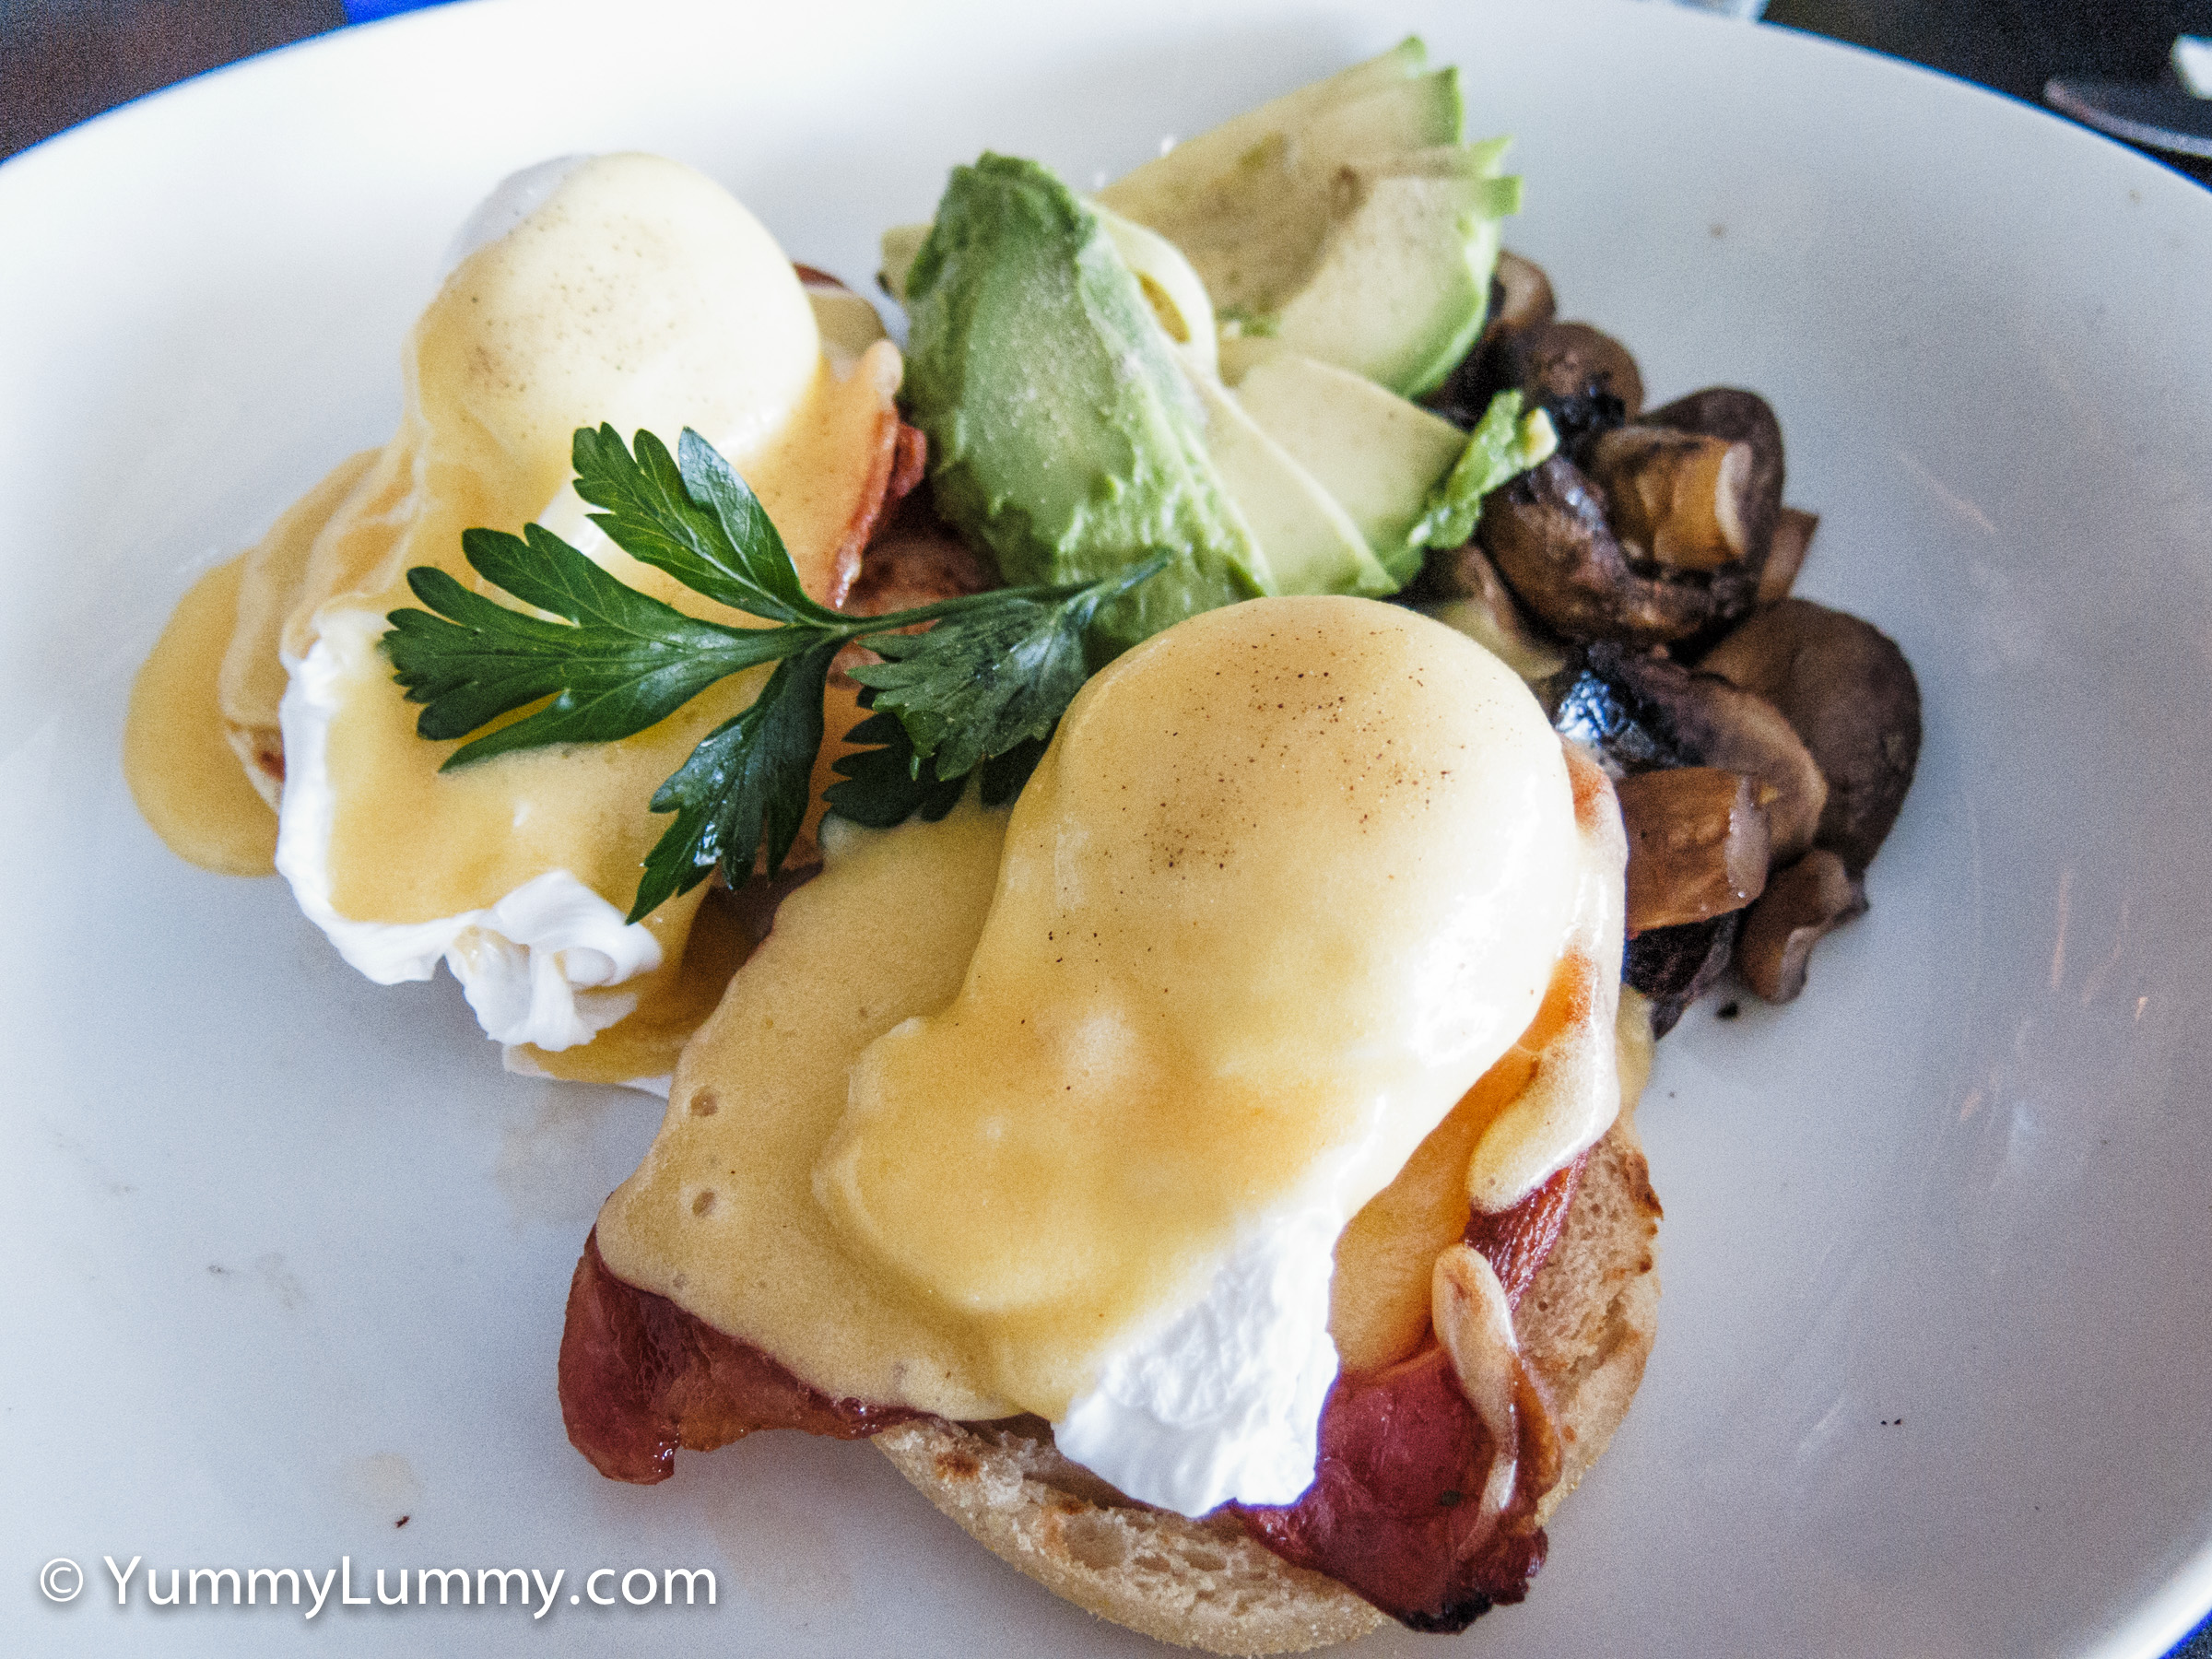 Poached eggs with bacon, hollandaise sauce, avocado and mushroom on sourdough toast